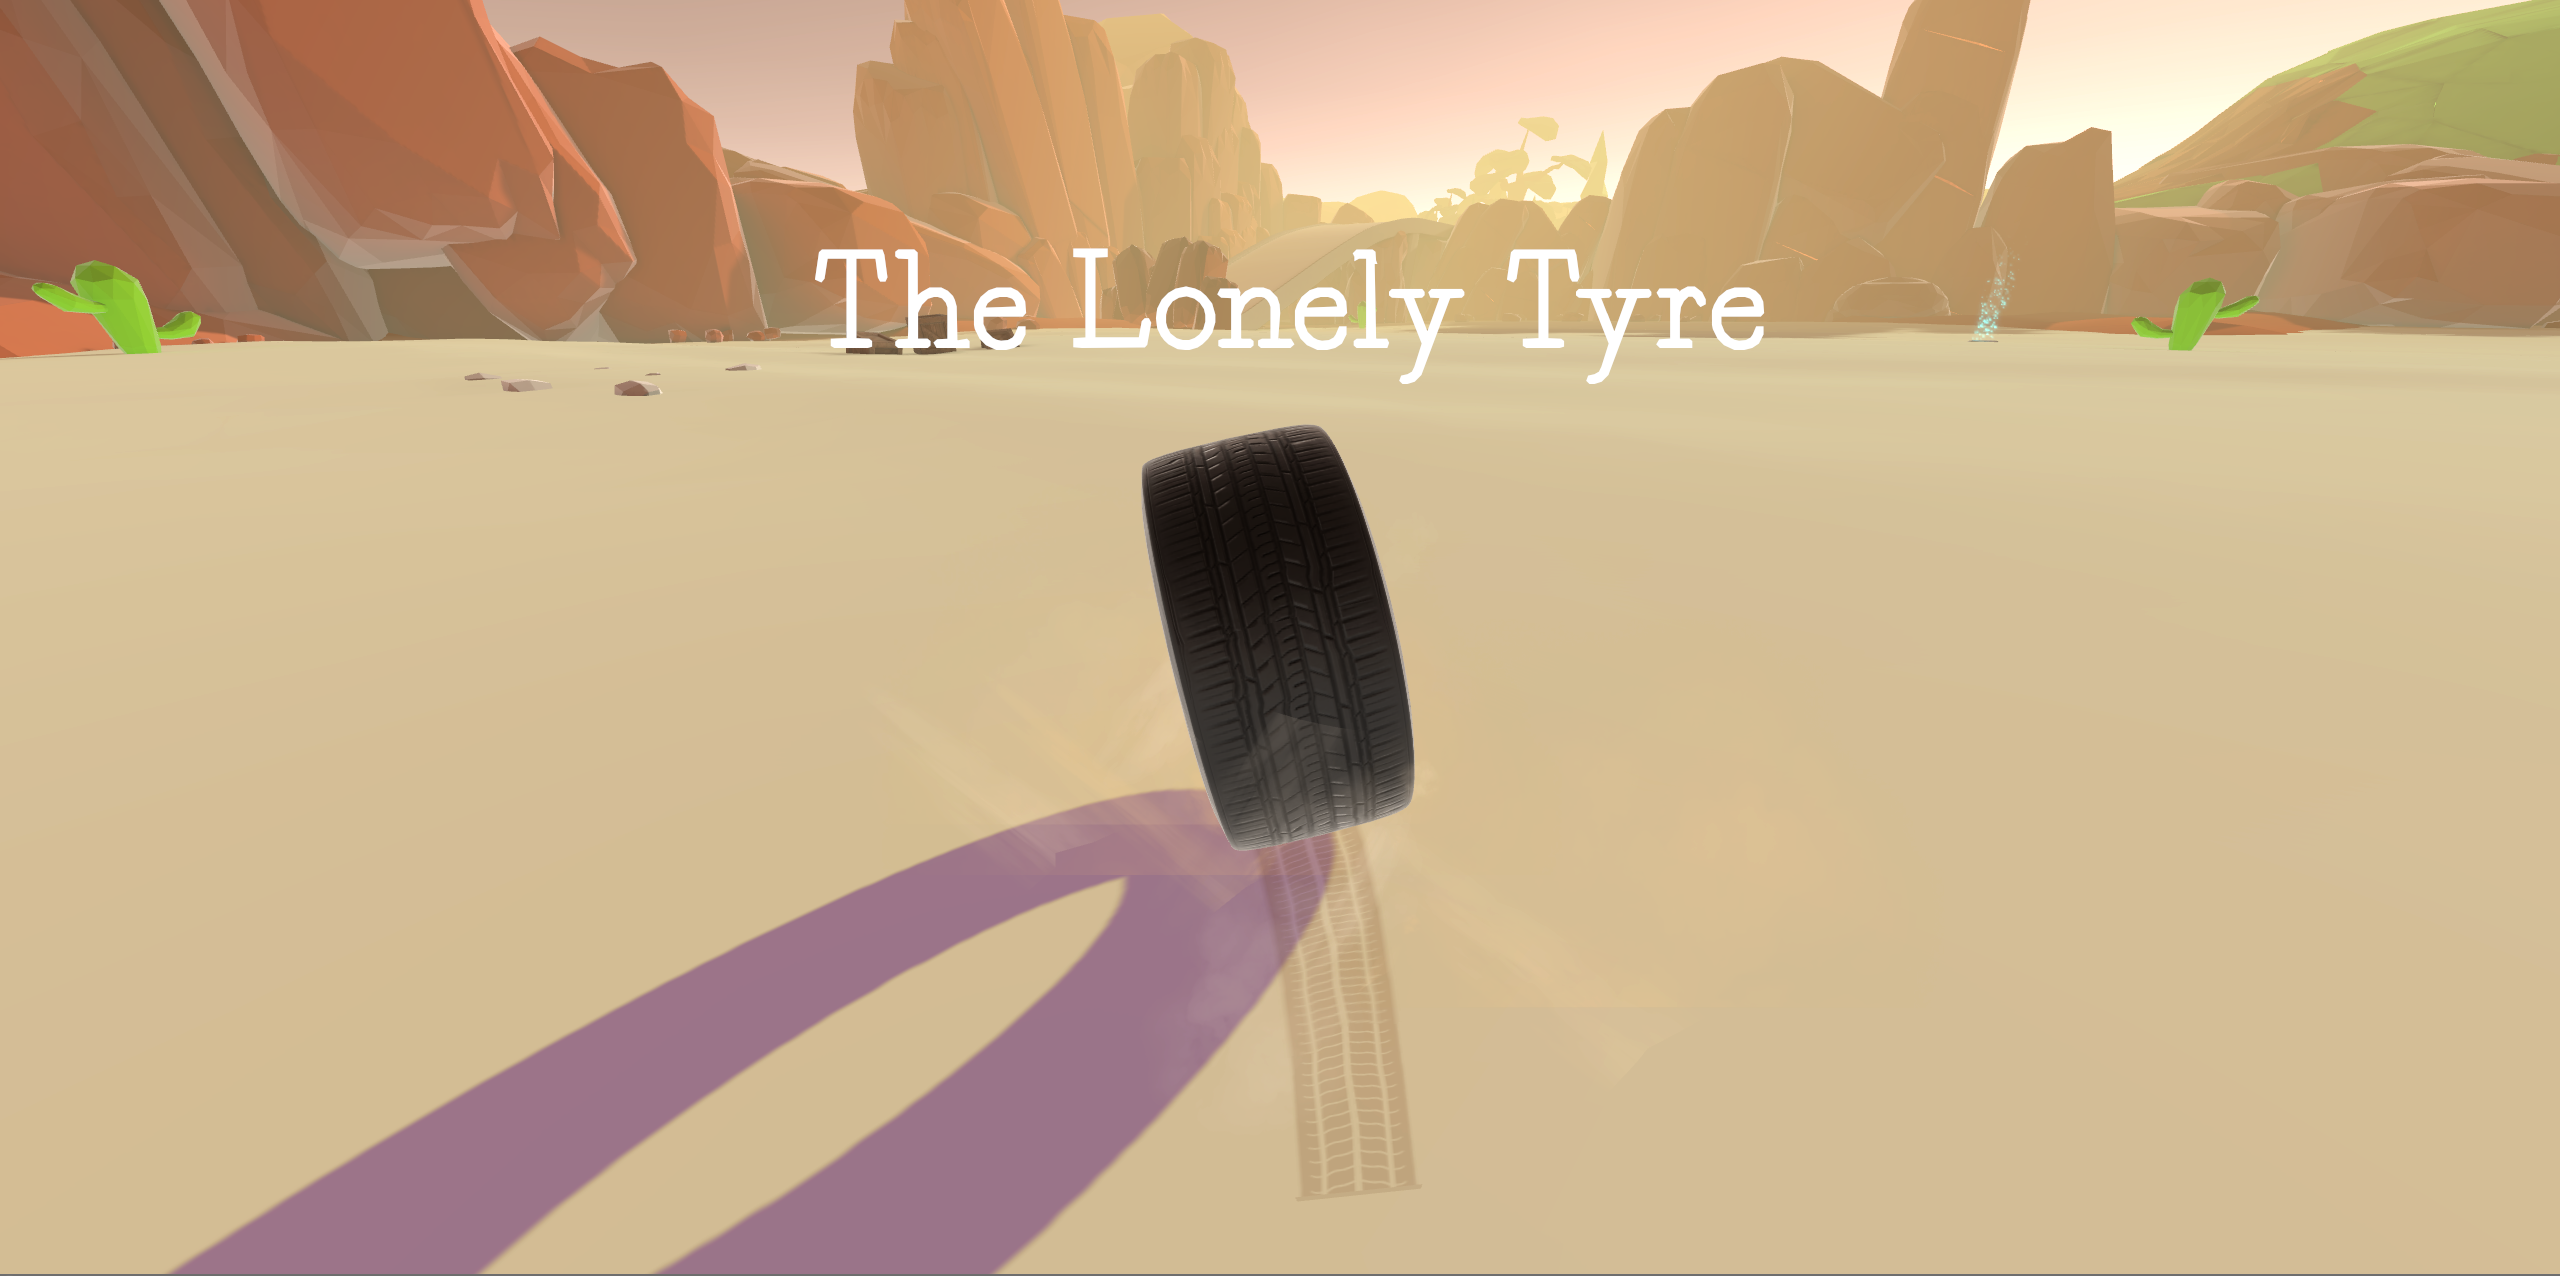 The Lonely Tyre